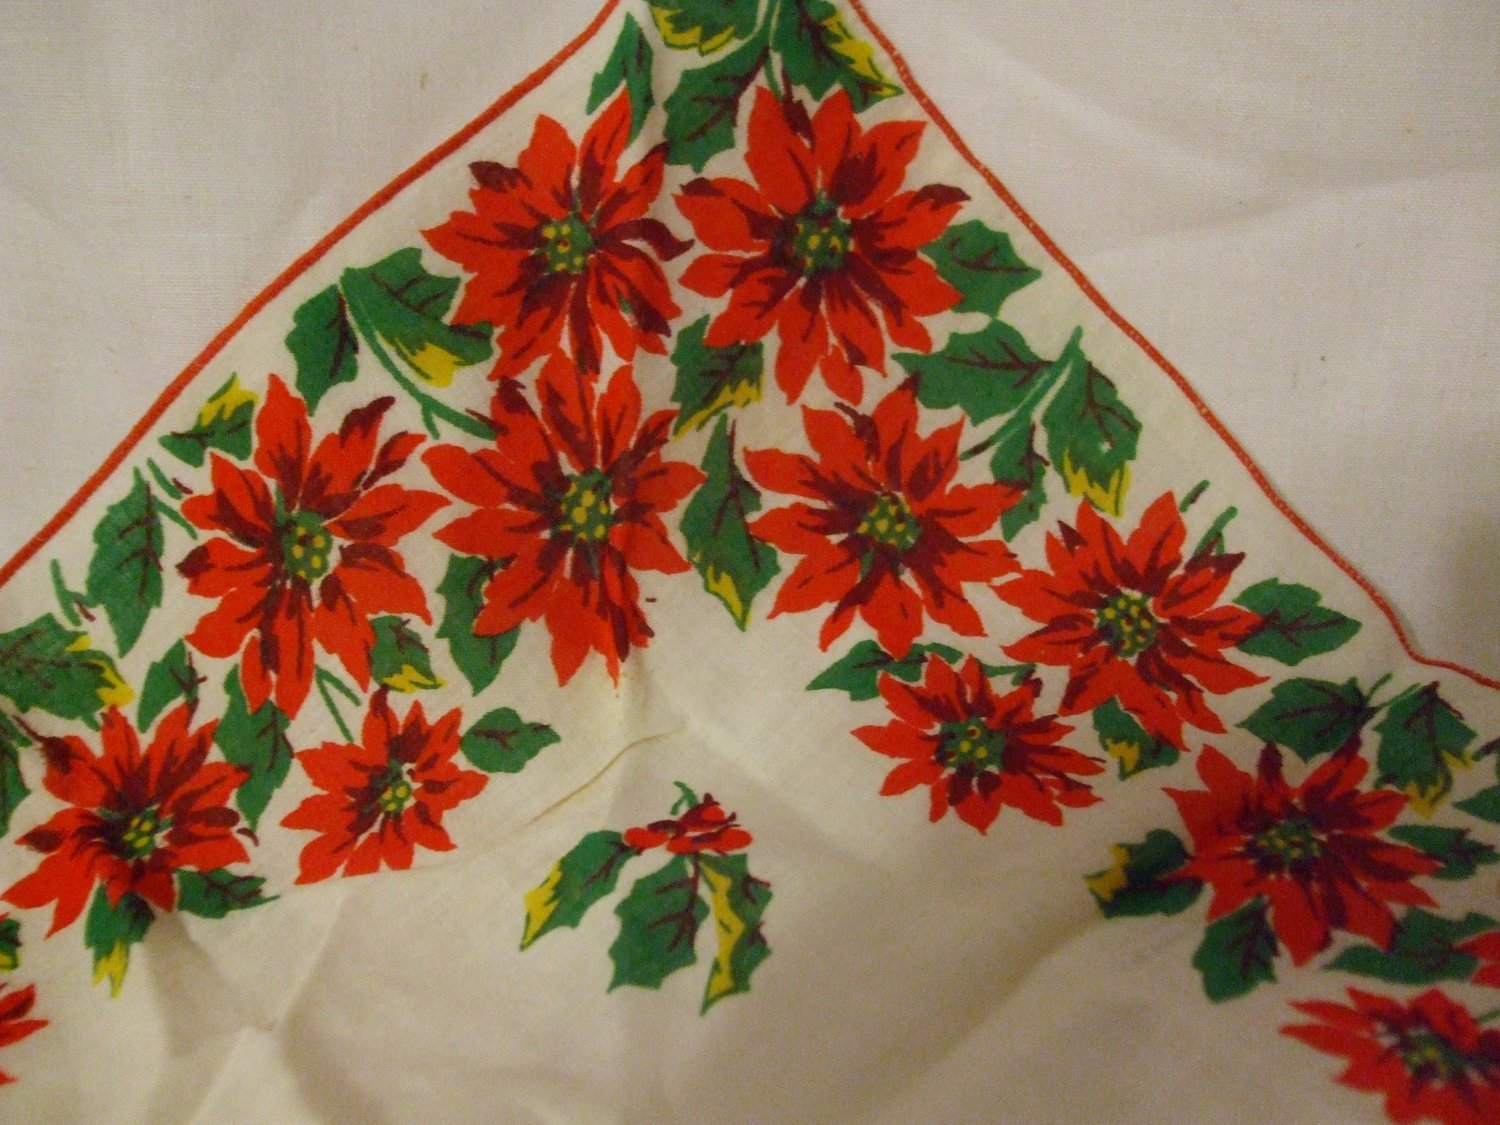 Vintage Christmas Handkerchief with Poinsettia's and Holly Berries